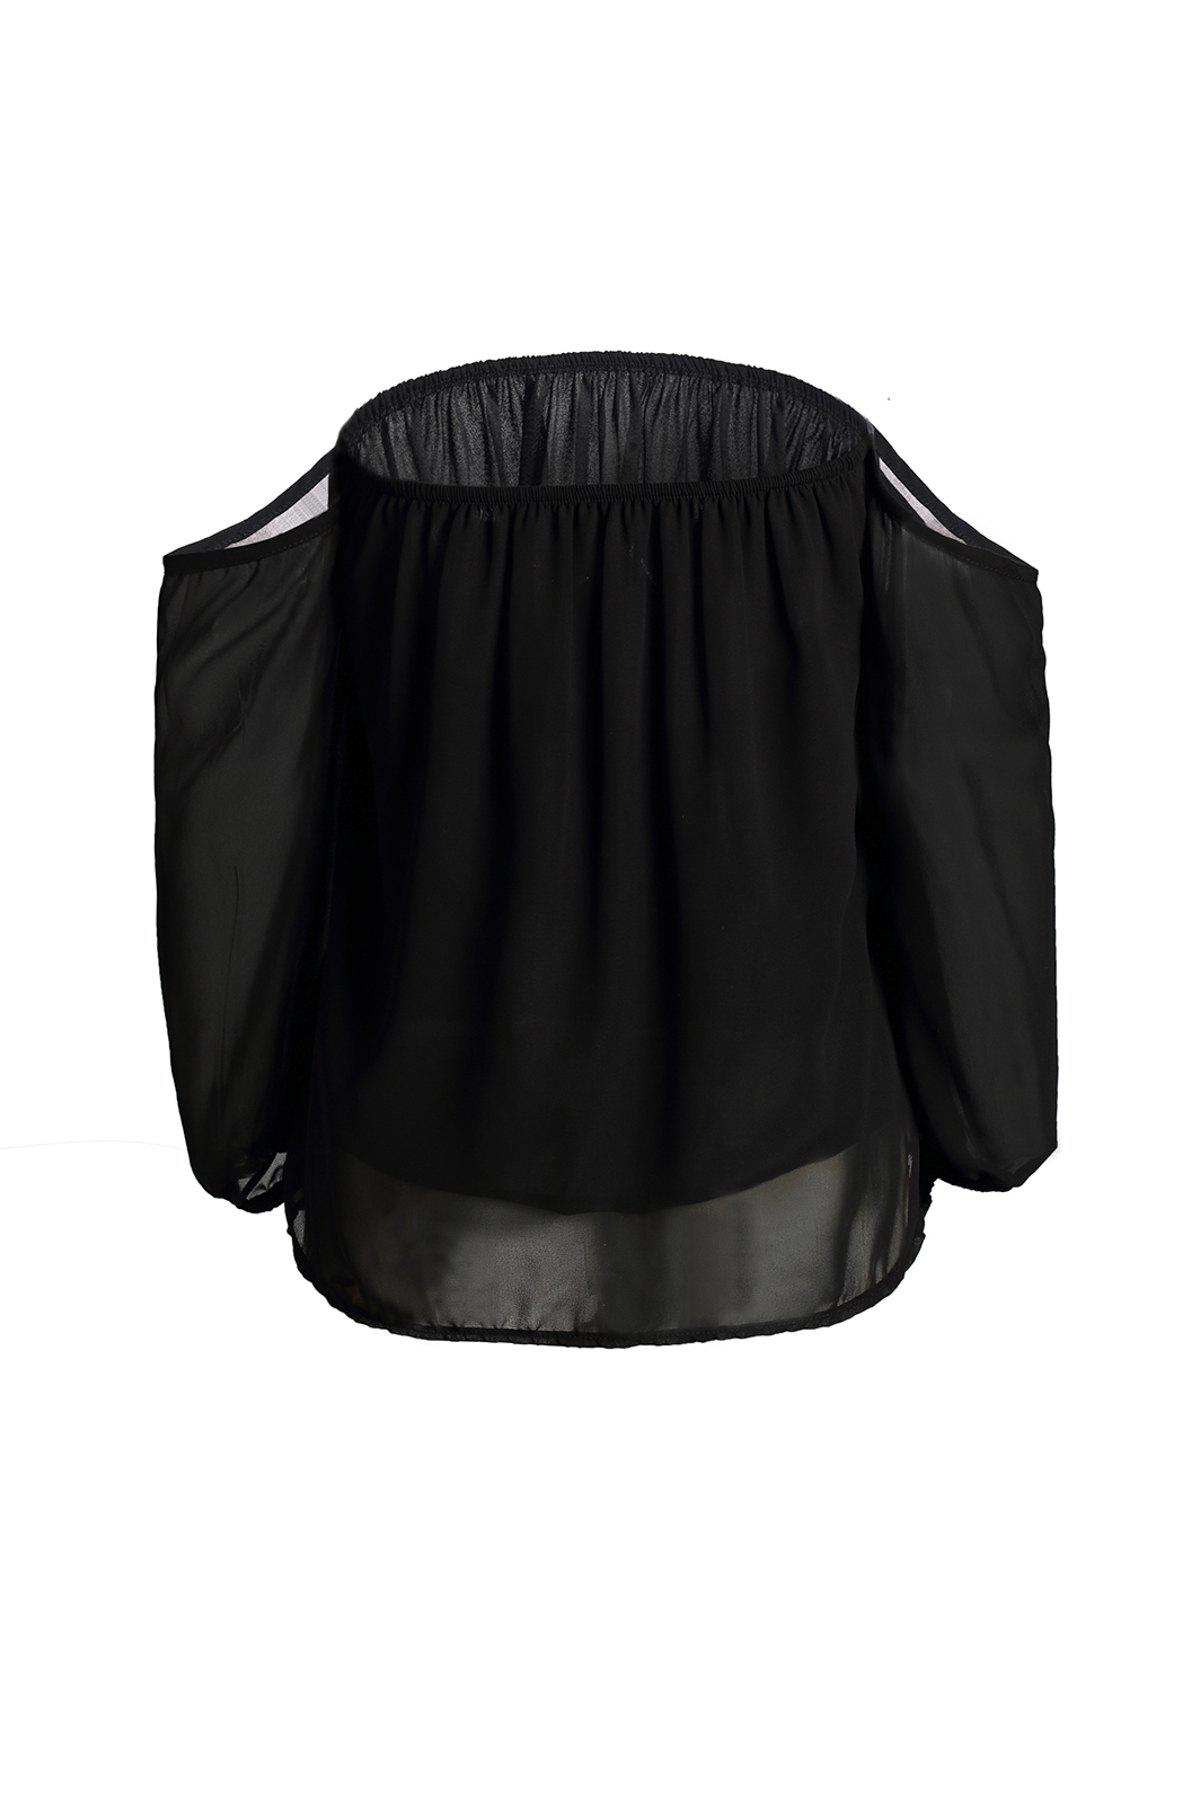 Fashionable Women's Off-The-Shoulder Solid Color Loose-Fitting Blouse - BLACK S